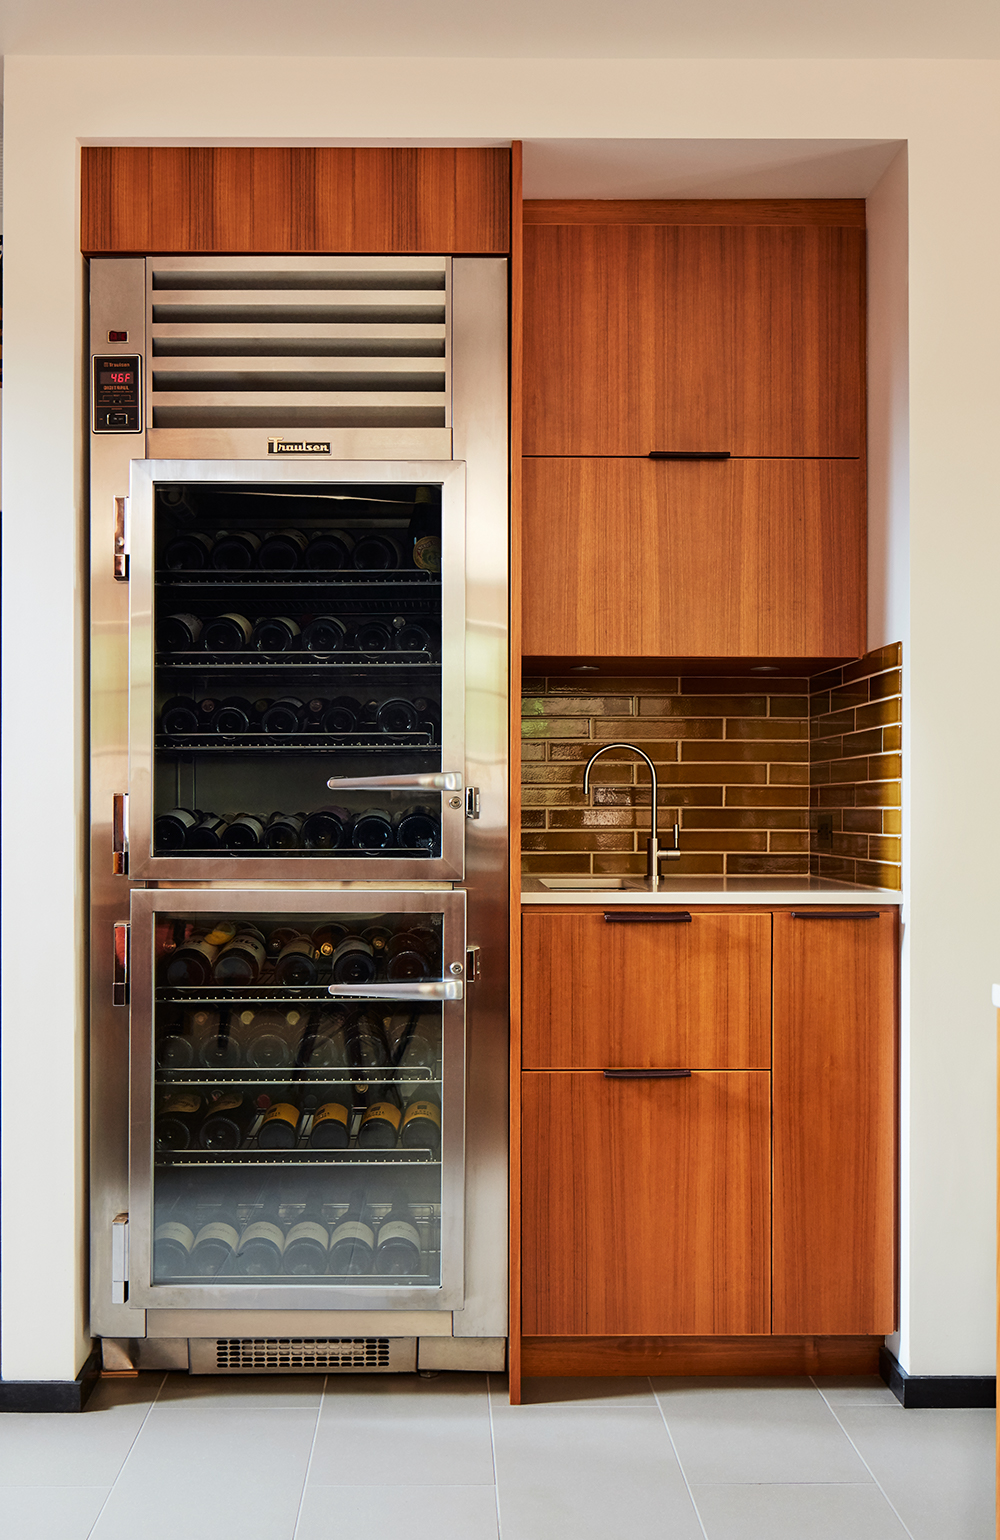 Minimalist faucets from Vola throughout the house keep the aesthetic clean, even in its details. The restaurant-grade wine fridge is from Traulsen.